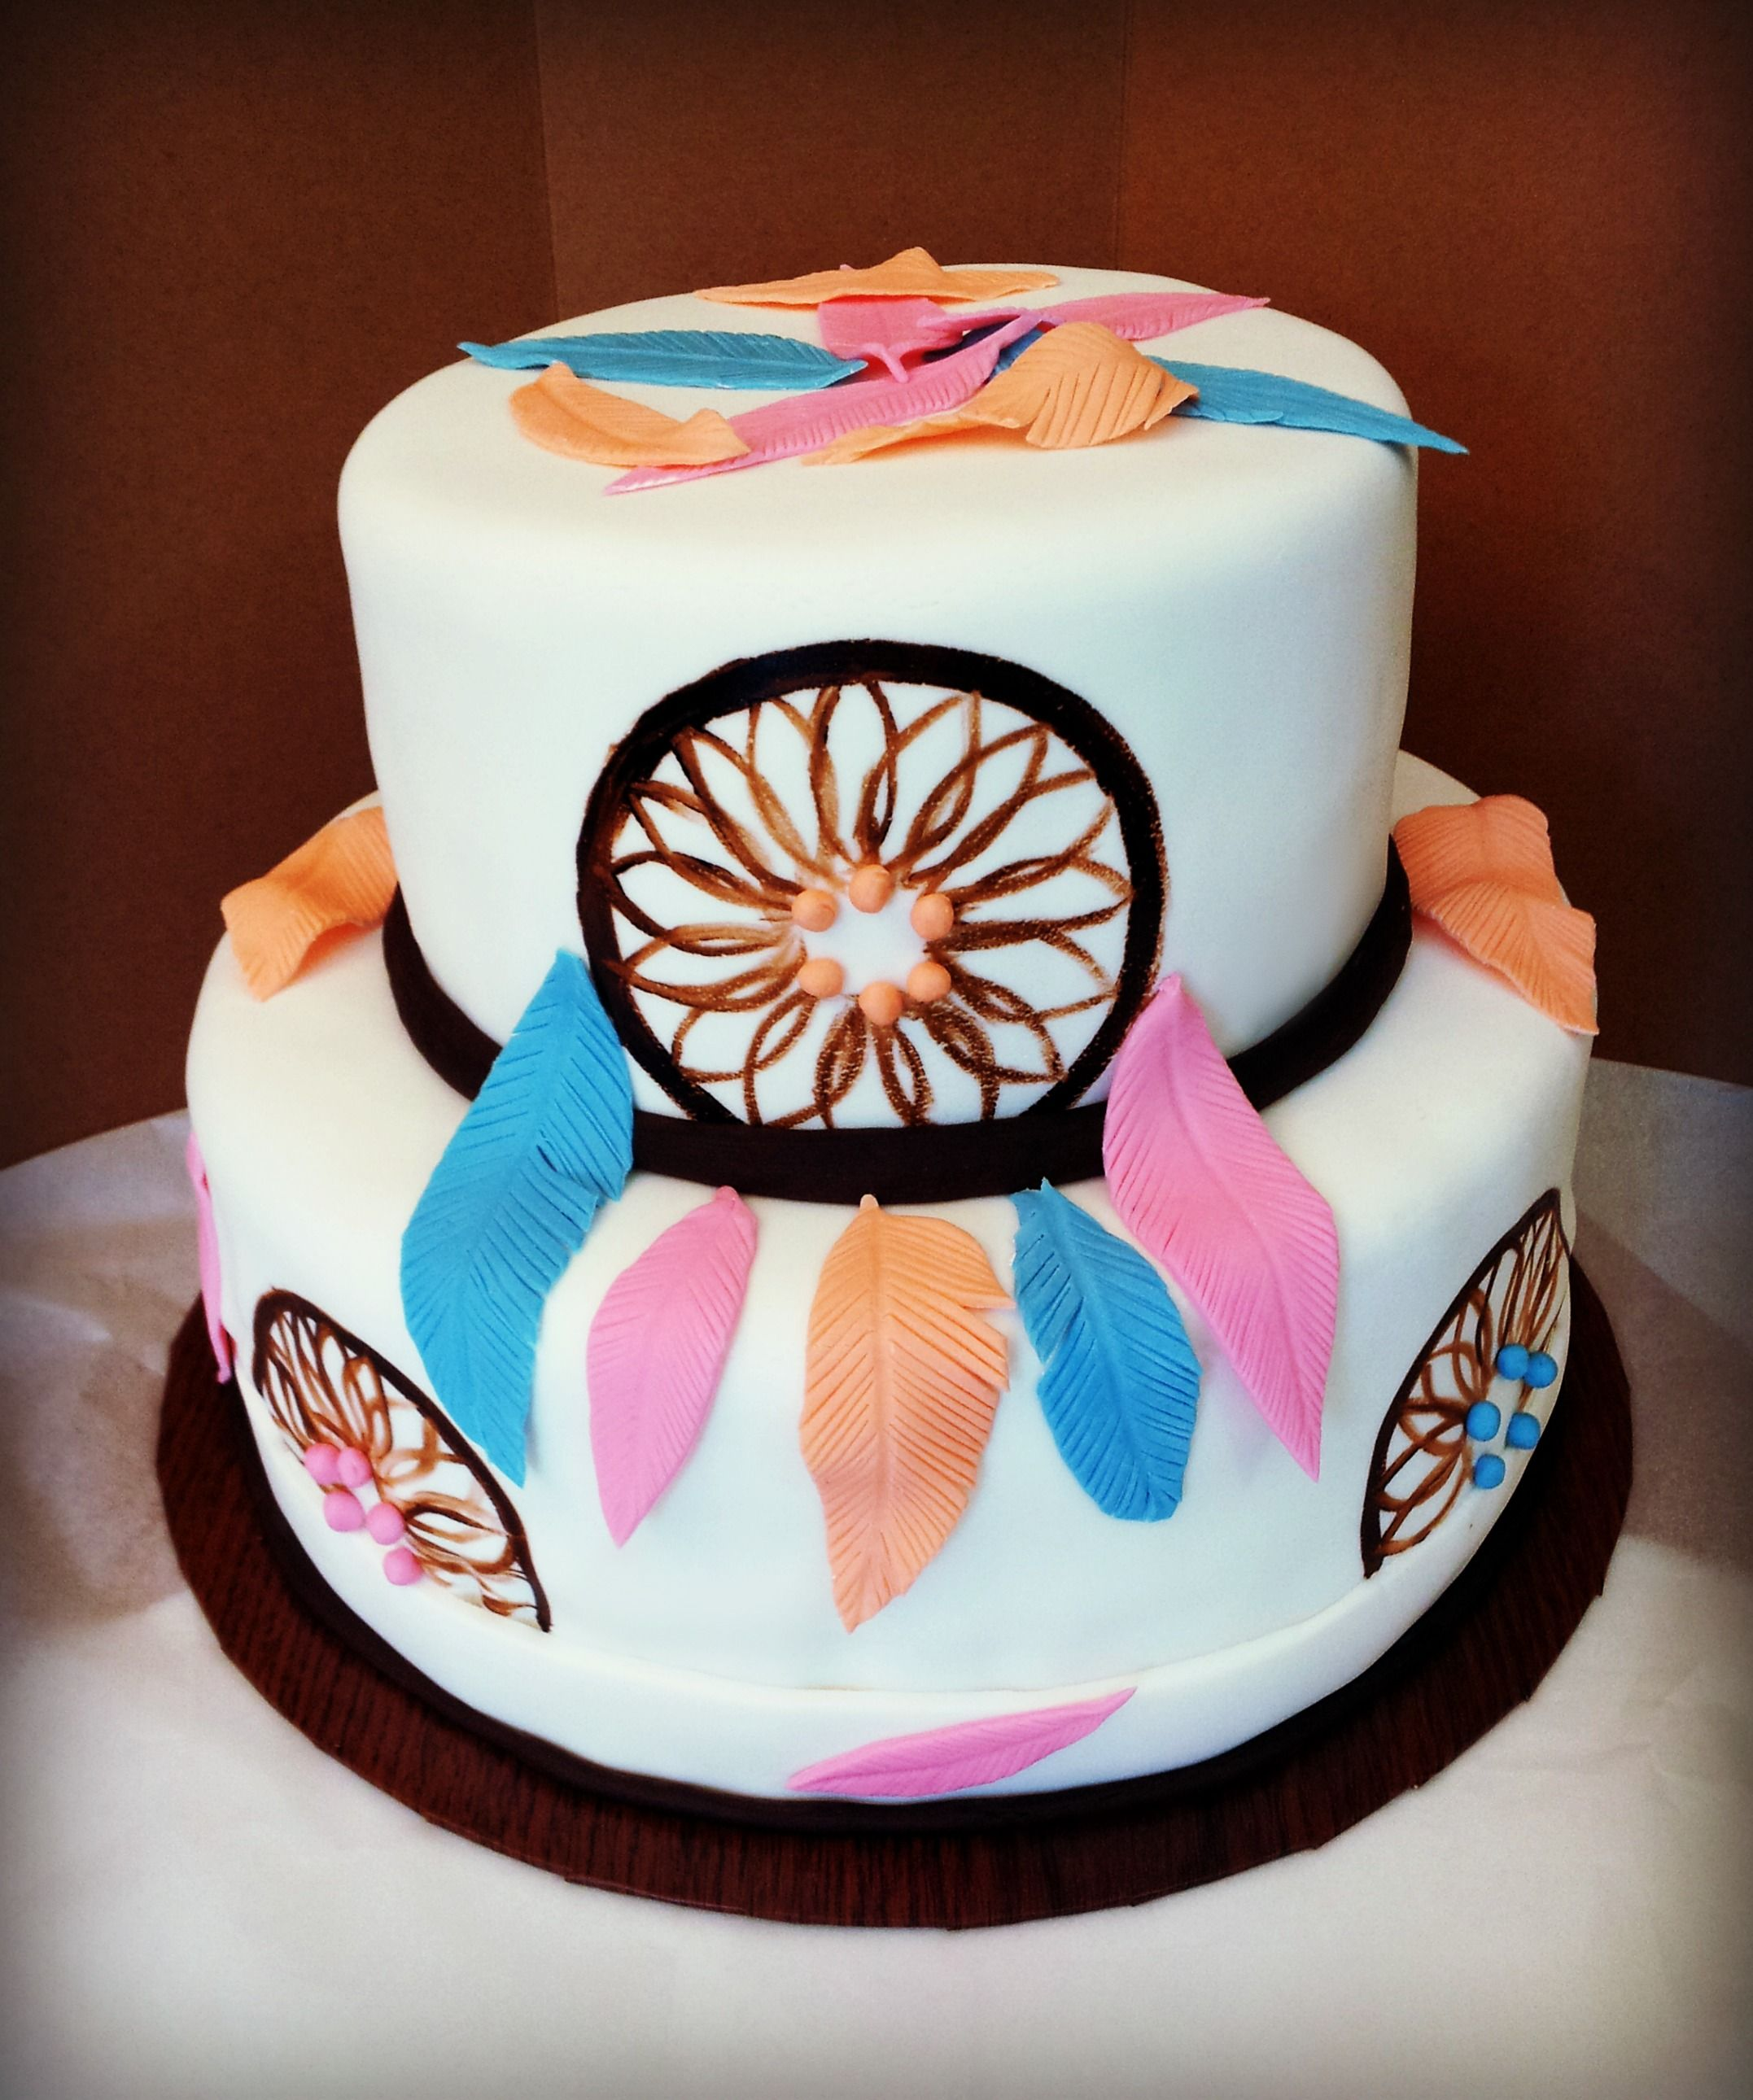 Native American Cake Themed Cakes Dream Catchers Birthday Ideas Birthdays Decorating Designer